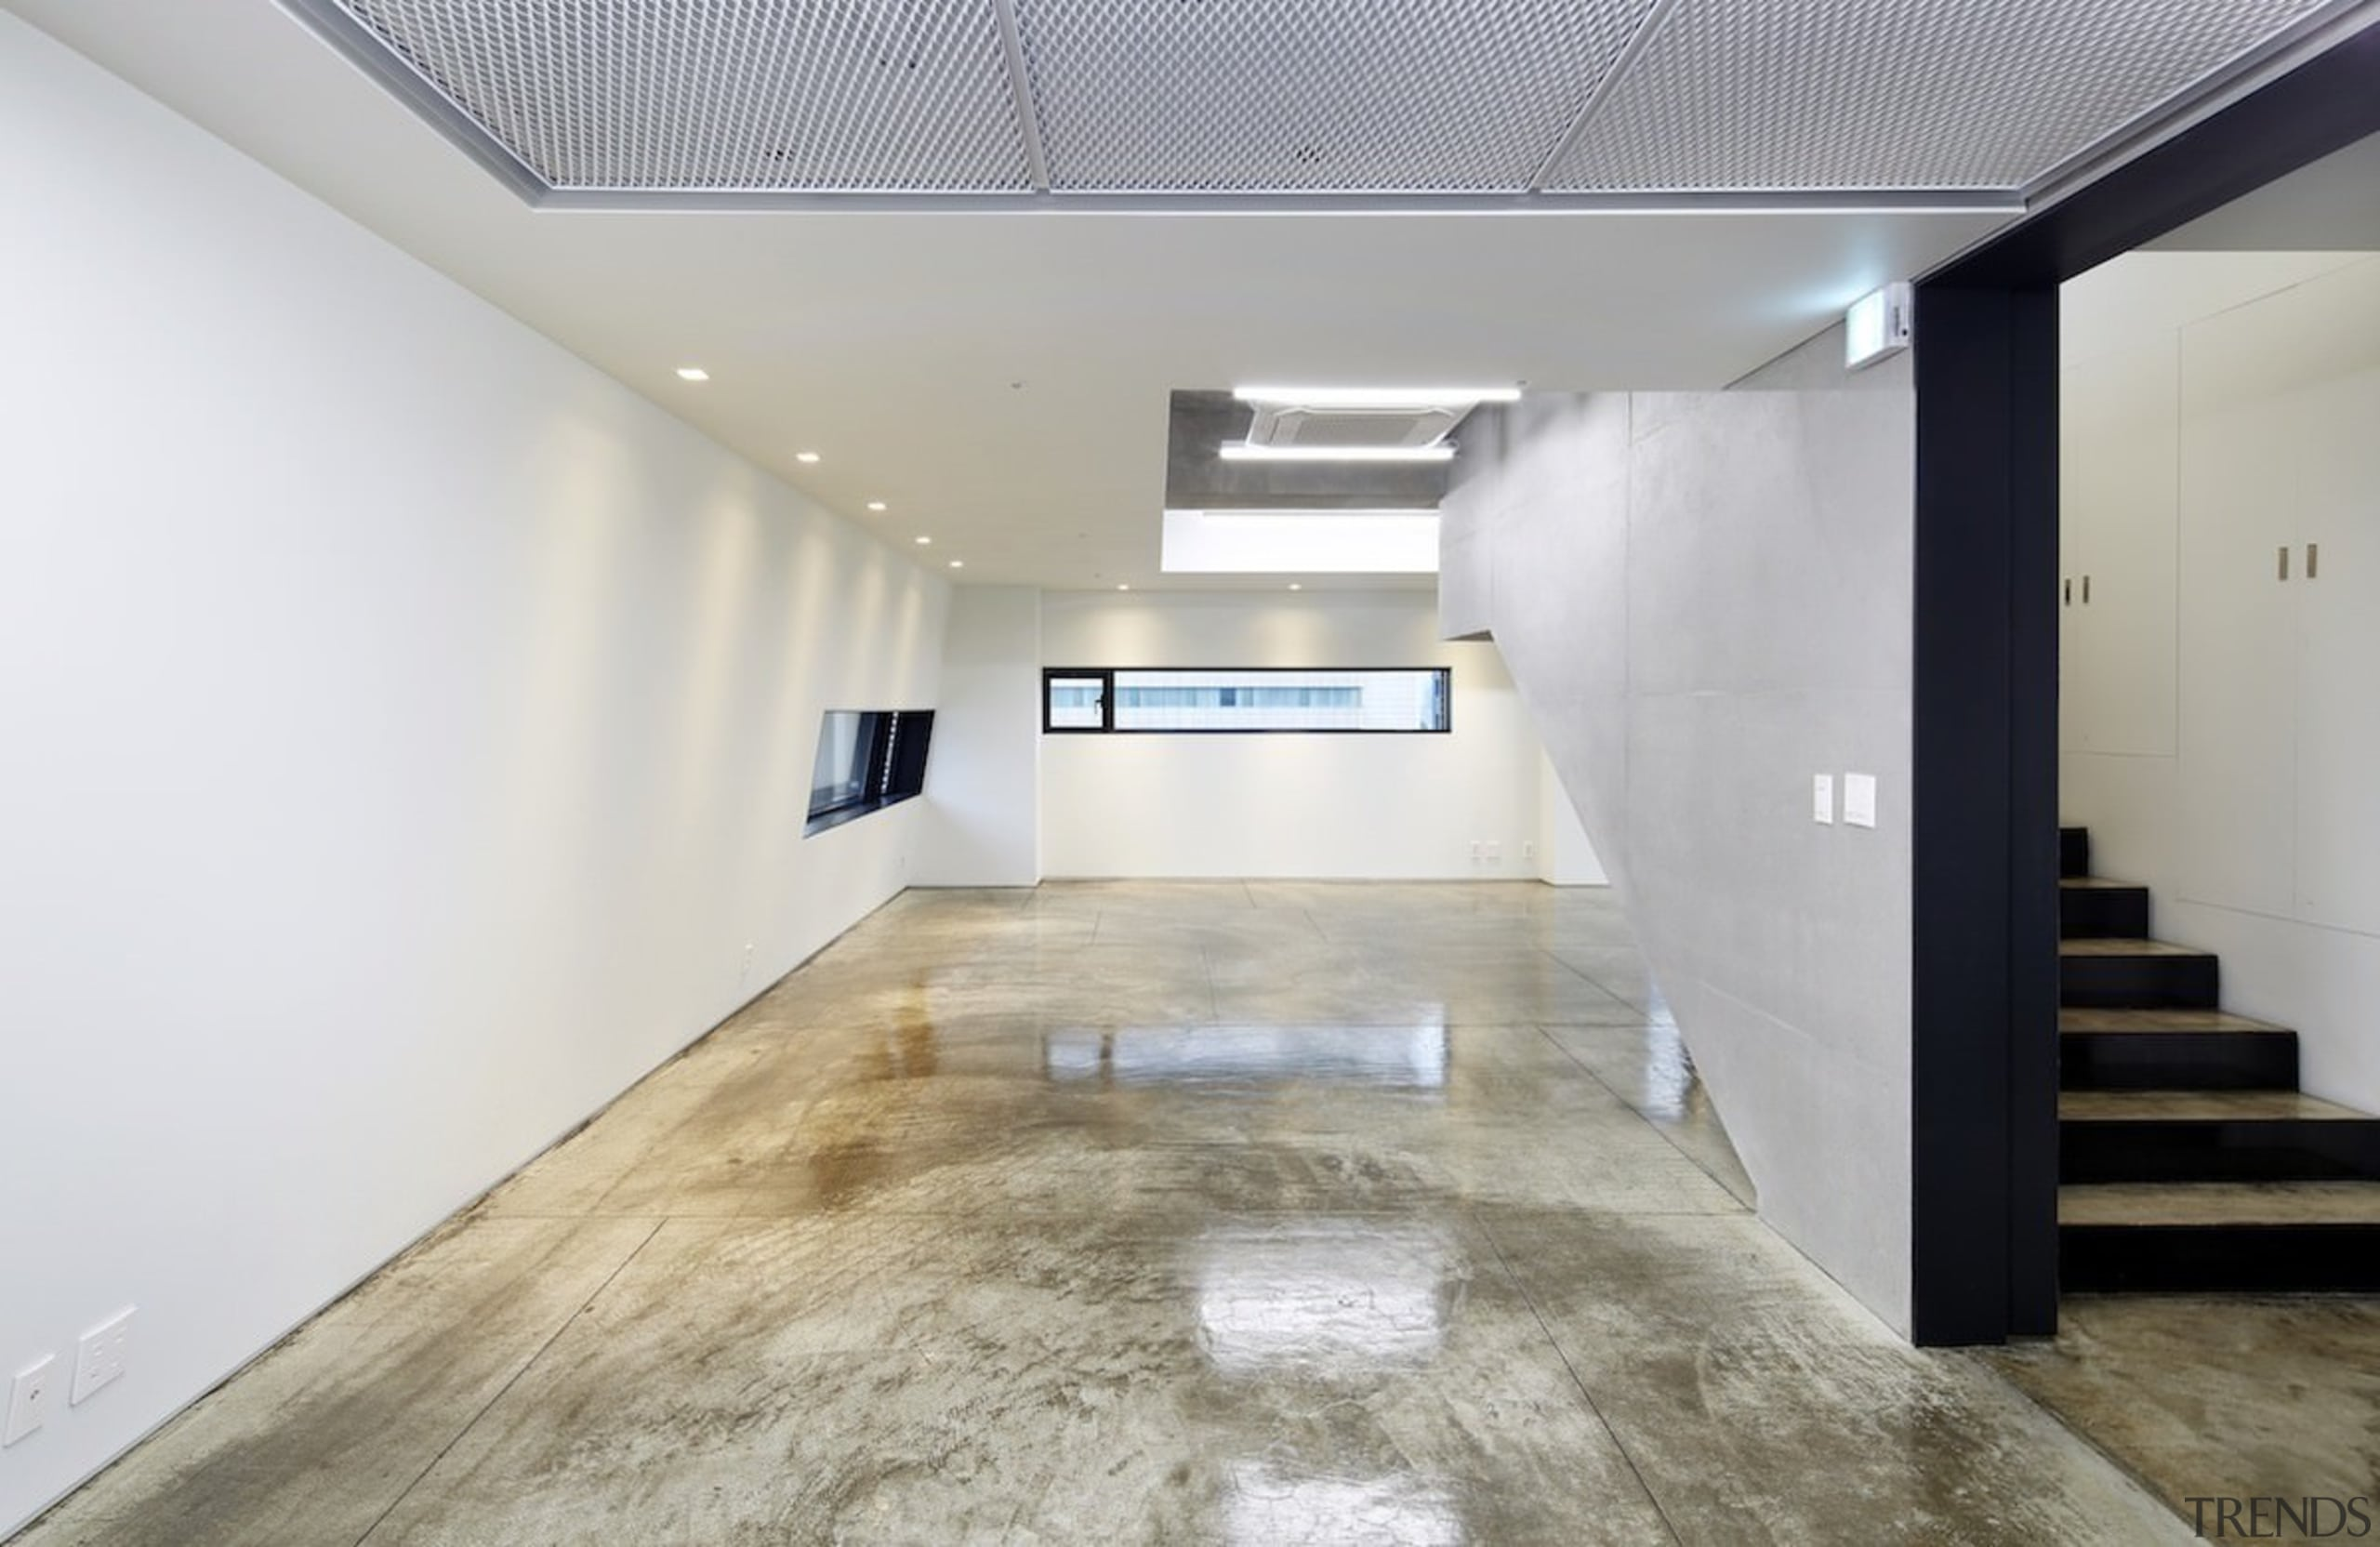 The 925 Building - The 925 Building - ceiling, daylighting, floor, flooring, interior design, lobby, property, real estate, wood flooring, gray, white